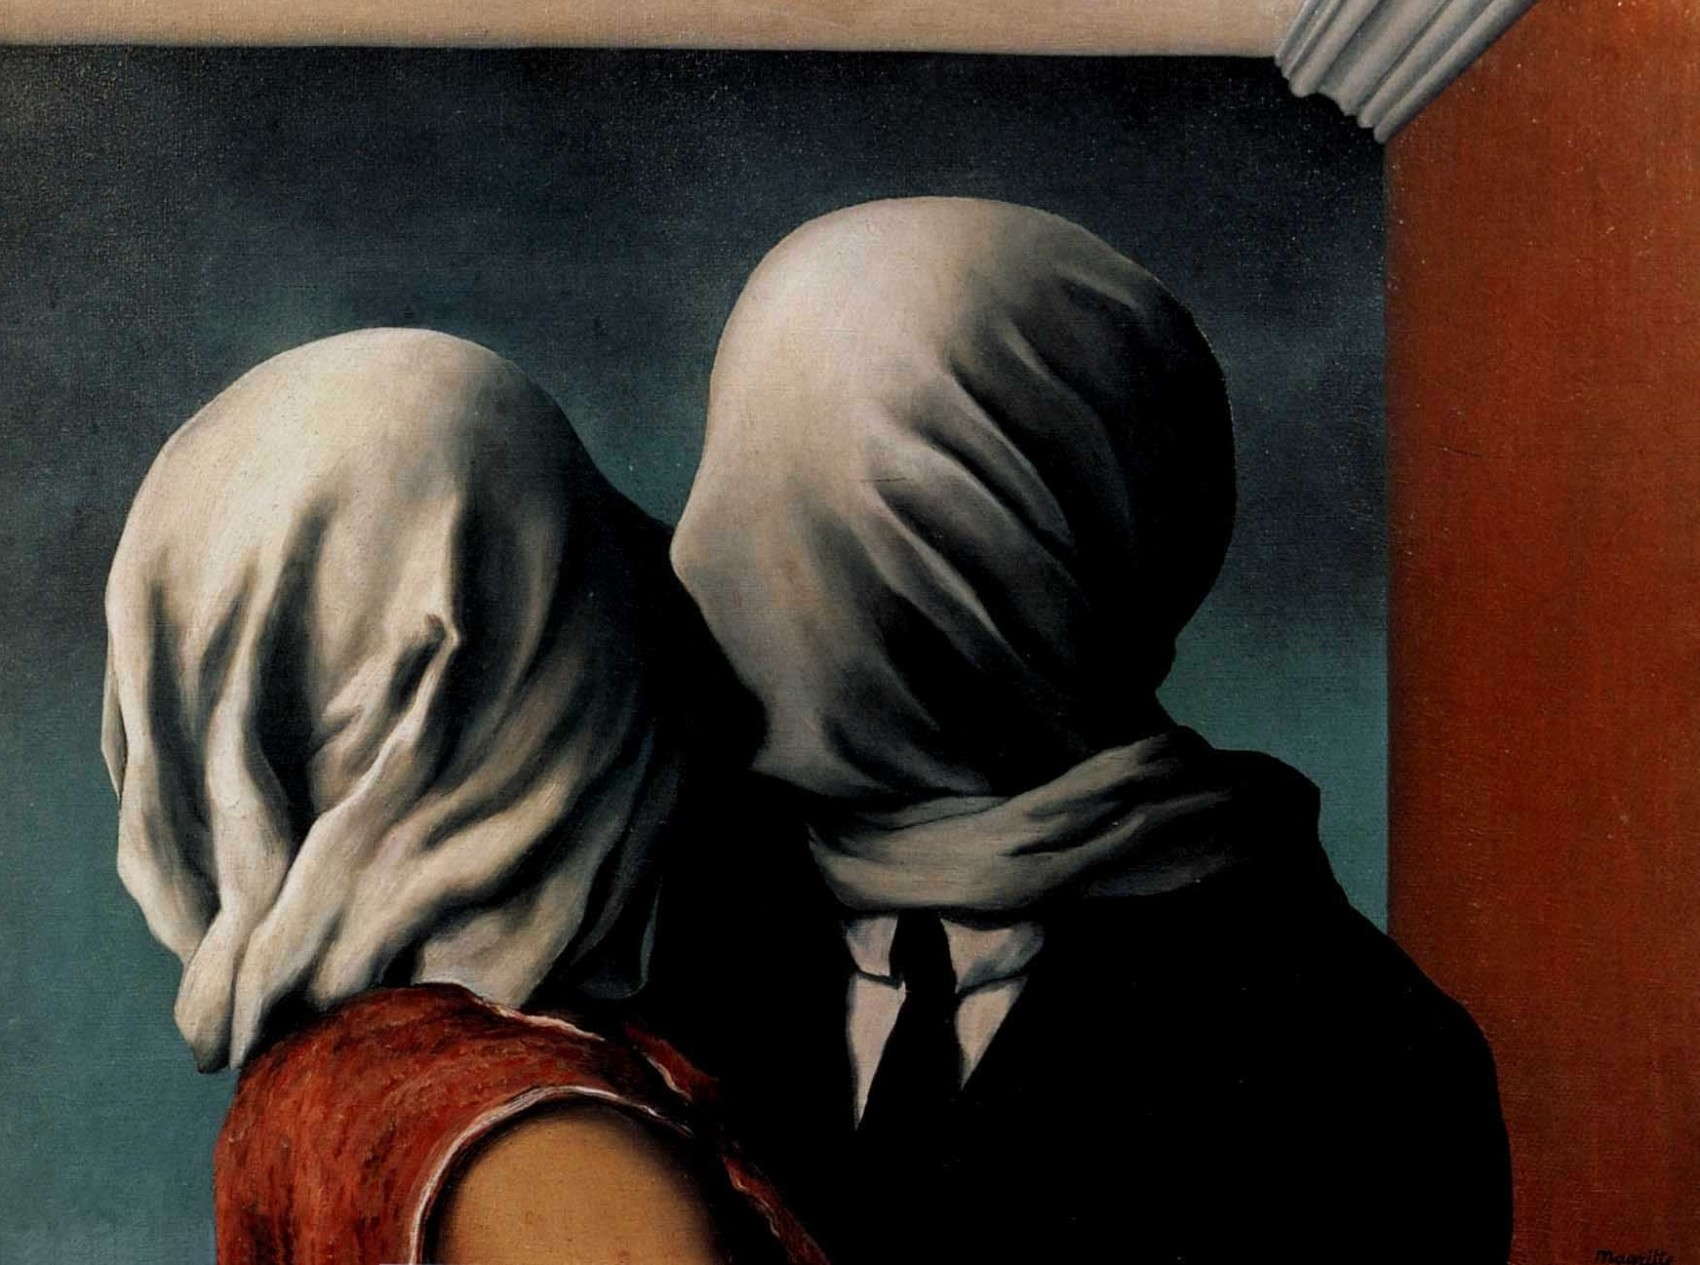 René Magritte Gli amanti, 1928 ©C. Herscovici, Brussels/ARS-Artists Rights Society, New York